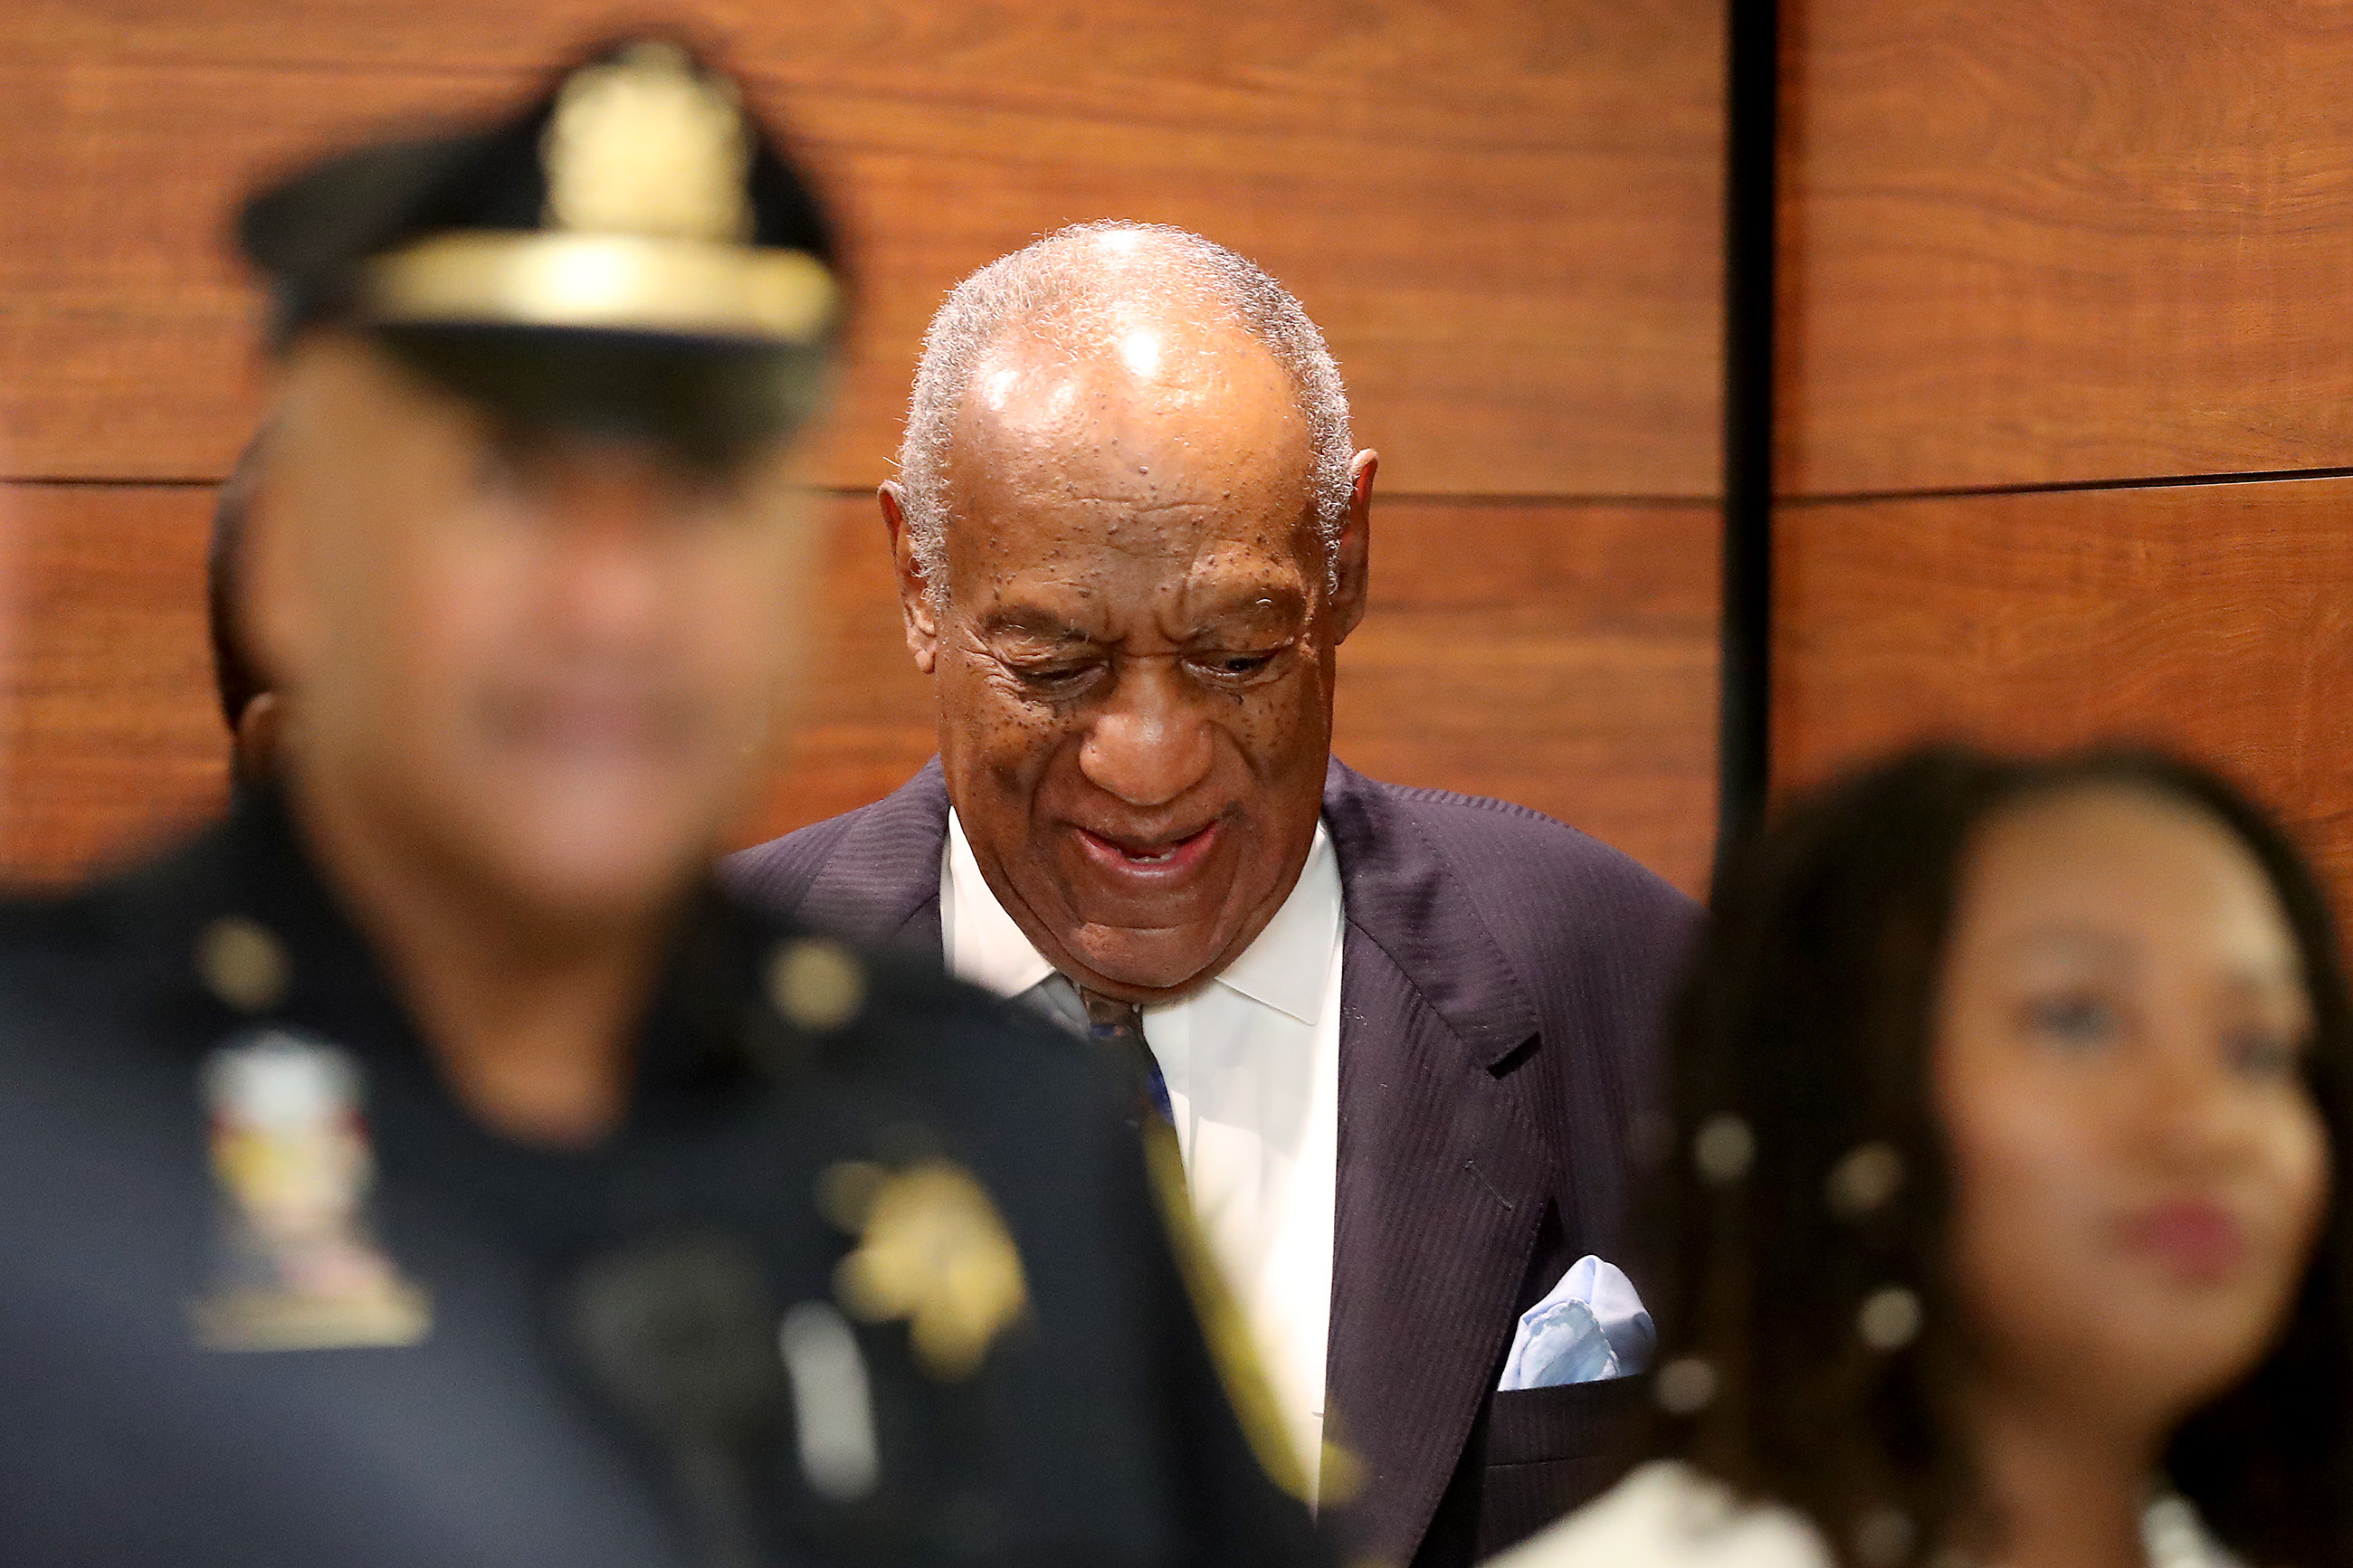 Actor and Comedian Bill Cosby arrives at the Montgomery County Courthouse for sentencing in his sexual assault trial in Norristown, Pennsylvania on September 24, 2018. - (Photo credit MAIALETTI/AFP/Getty Images)